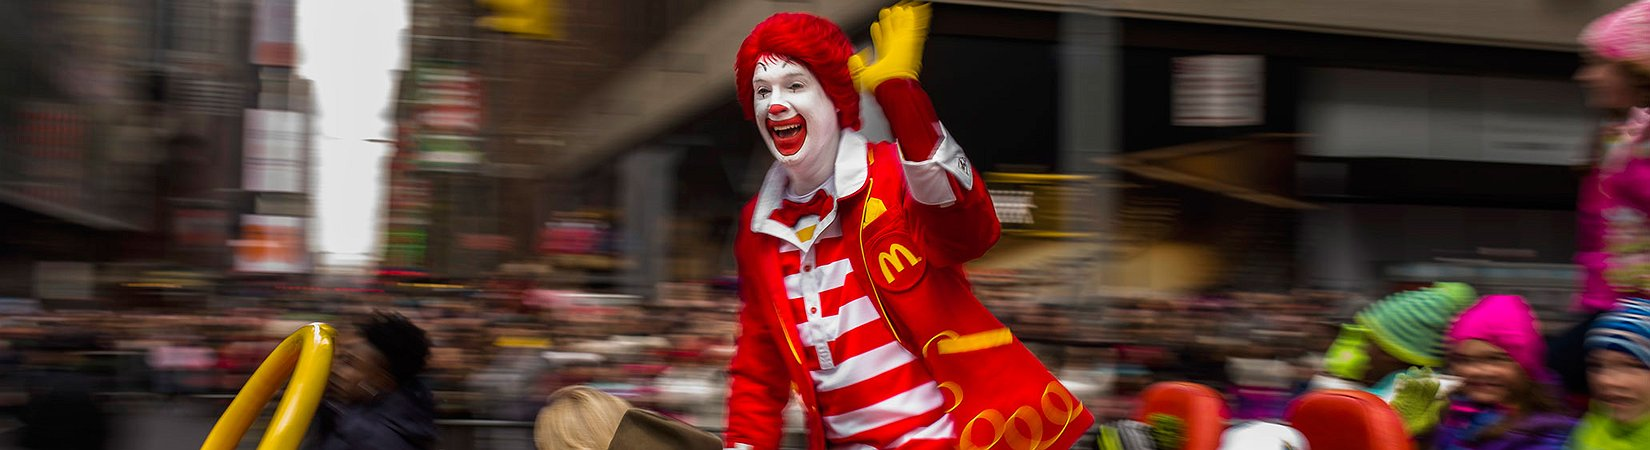 McDonald's is moving to the UK to escape tax attacks from EU regulators